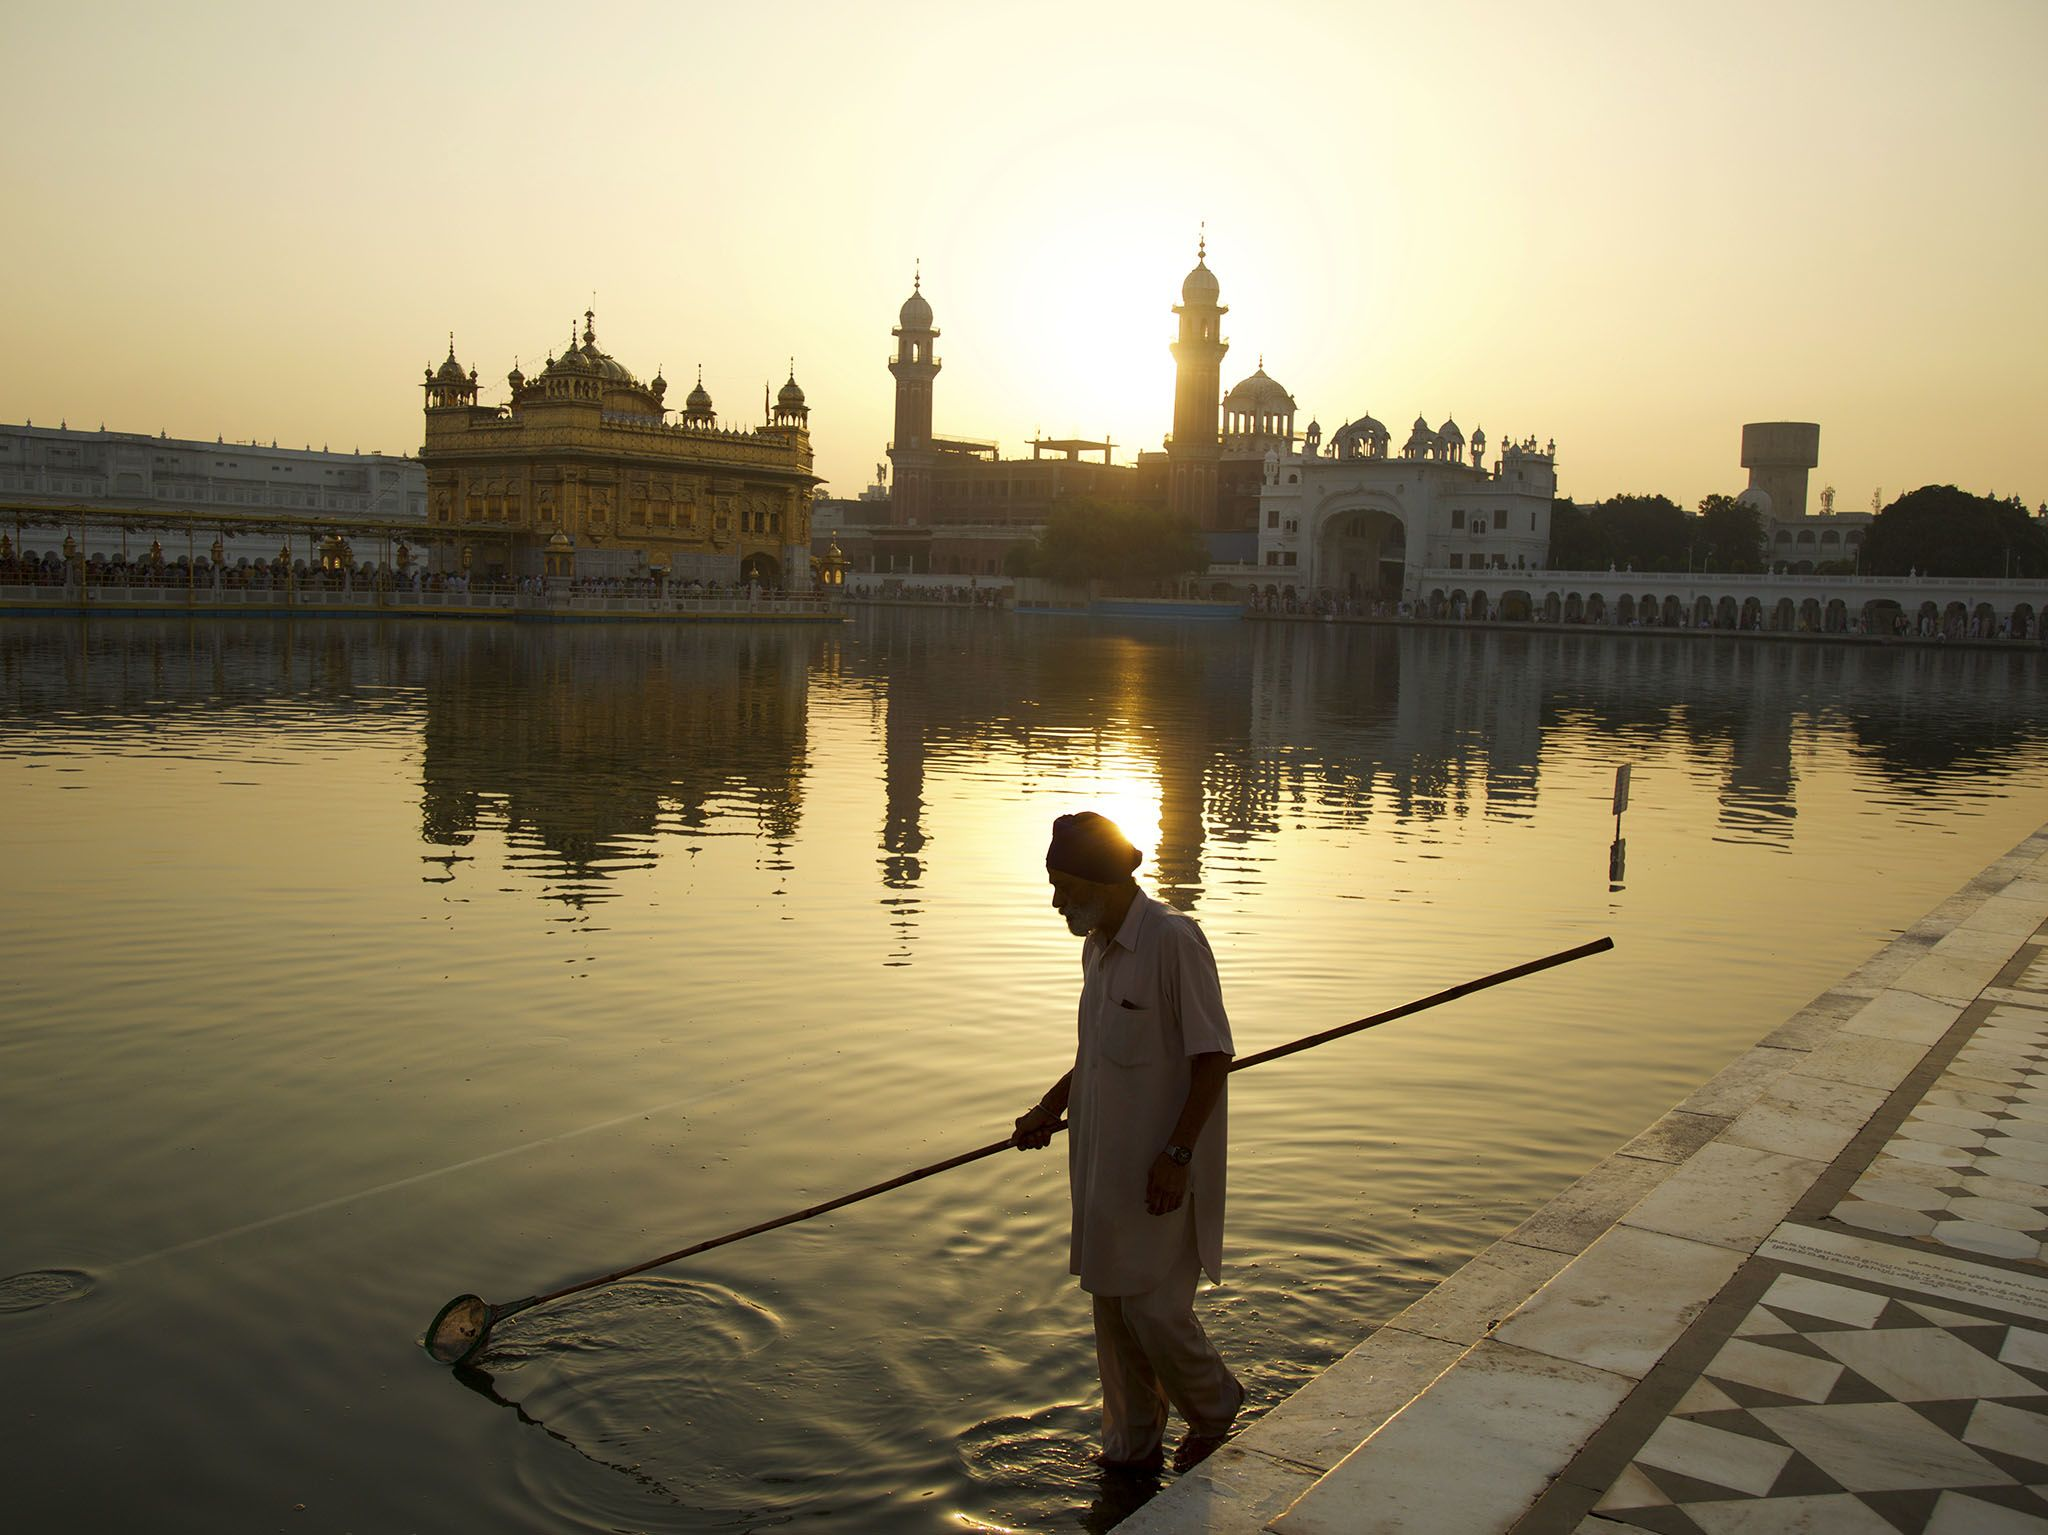 Punjab, India: A man cleans the moat as the sun rises at the Golden Temple. This image is from... [Photo of the day - May 2017]